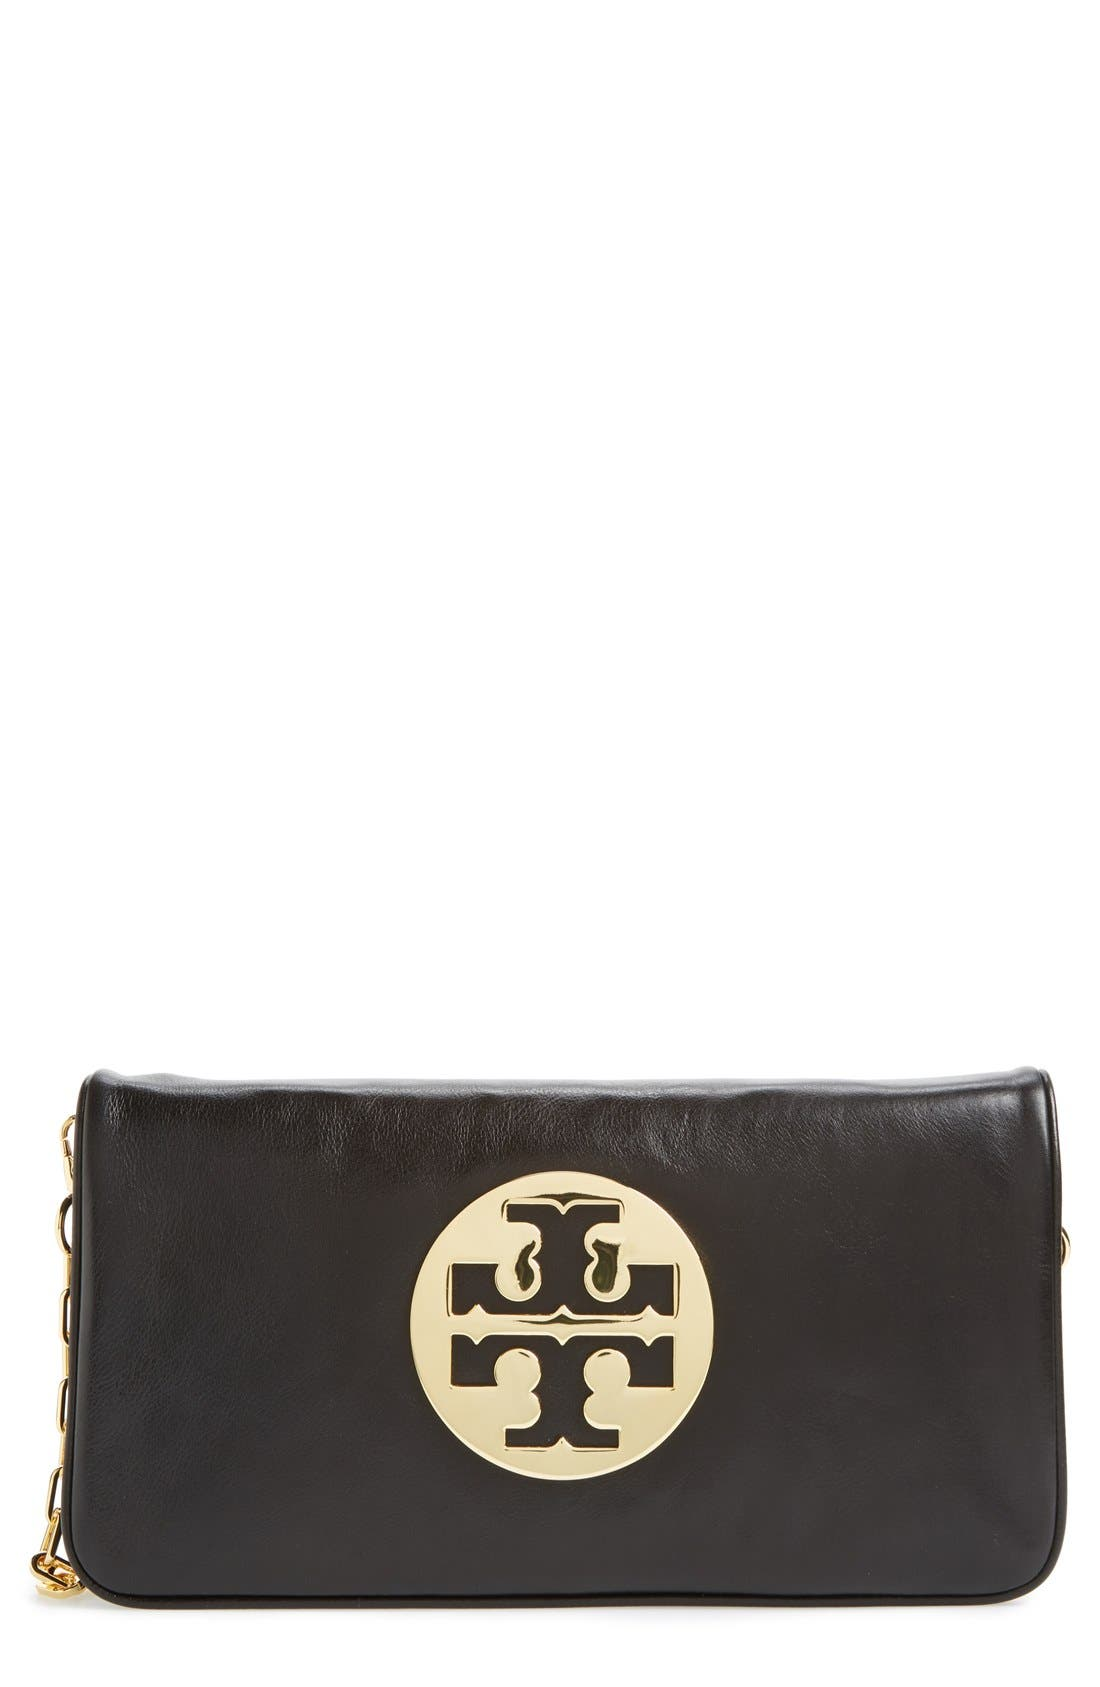 Alternate Image 1 Selected - Tory Burch 'Reva' Clutch